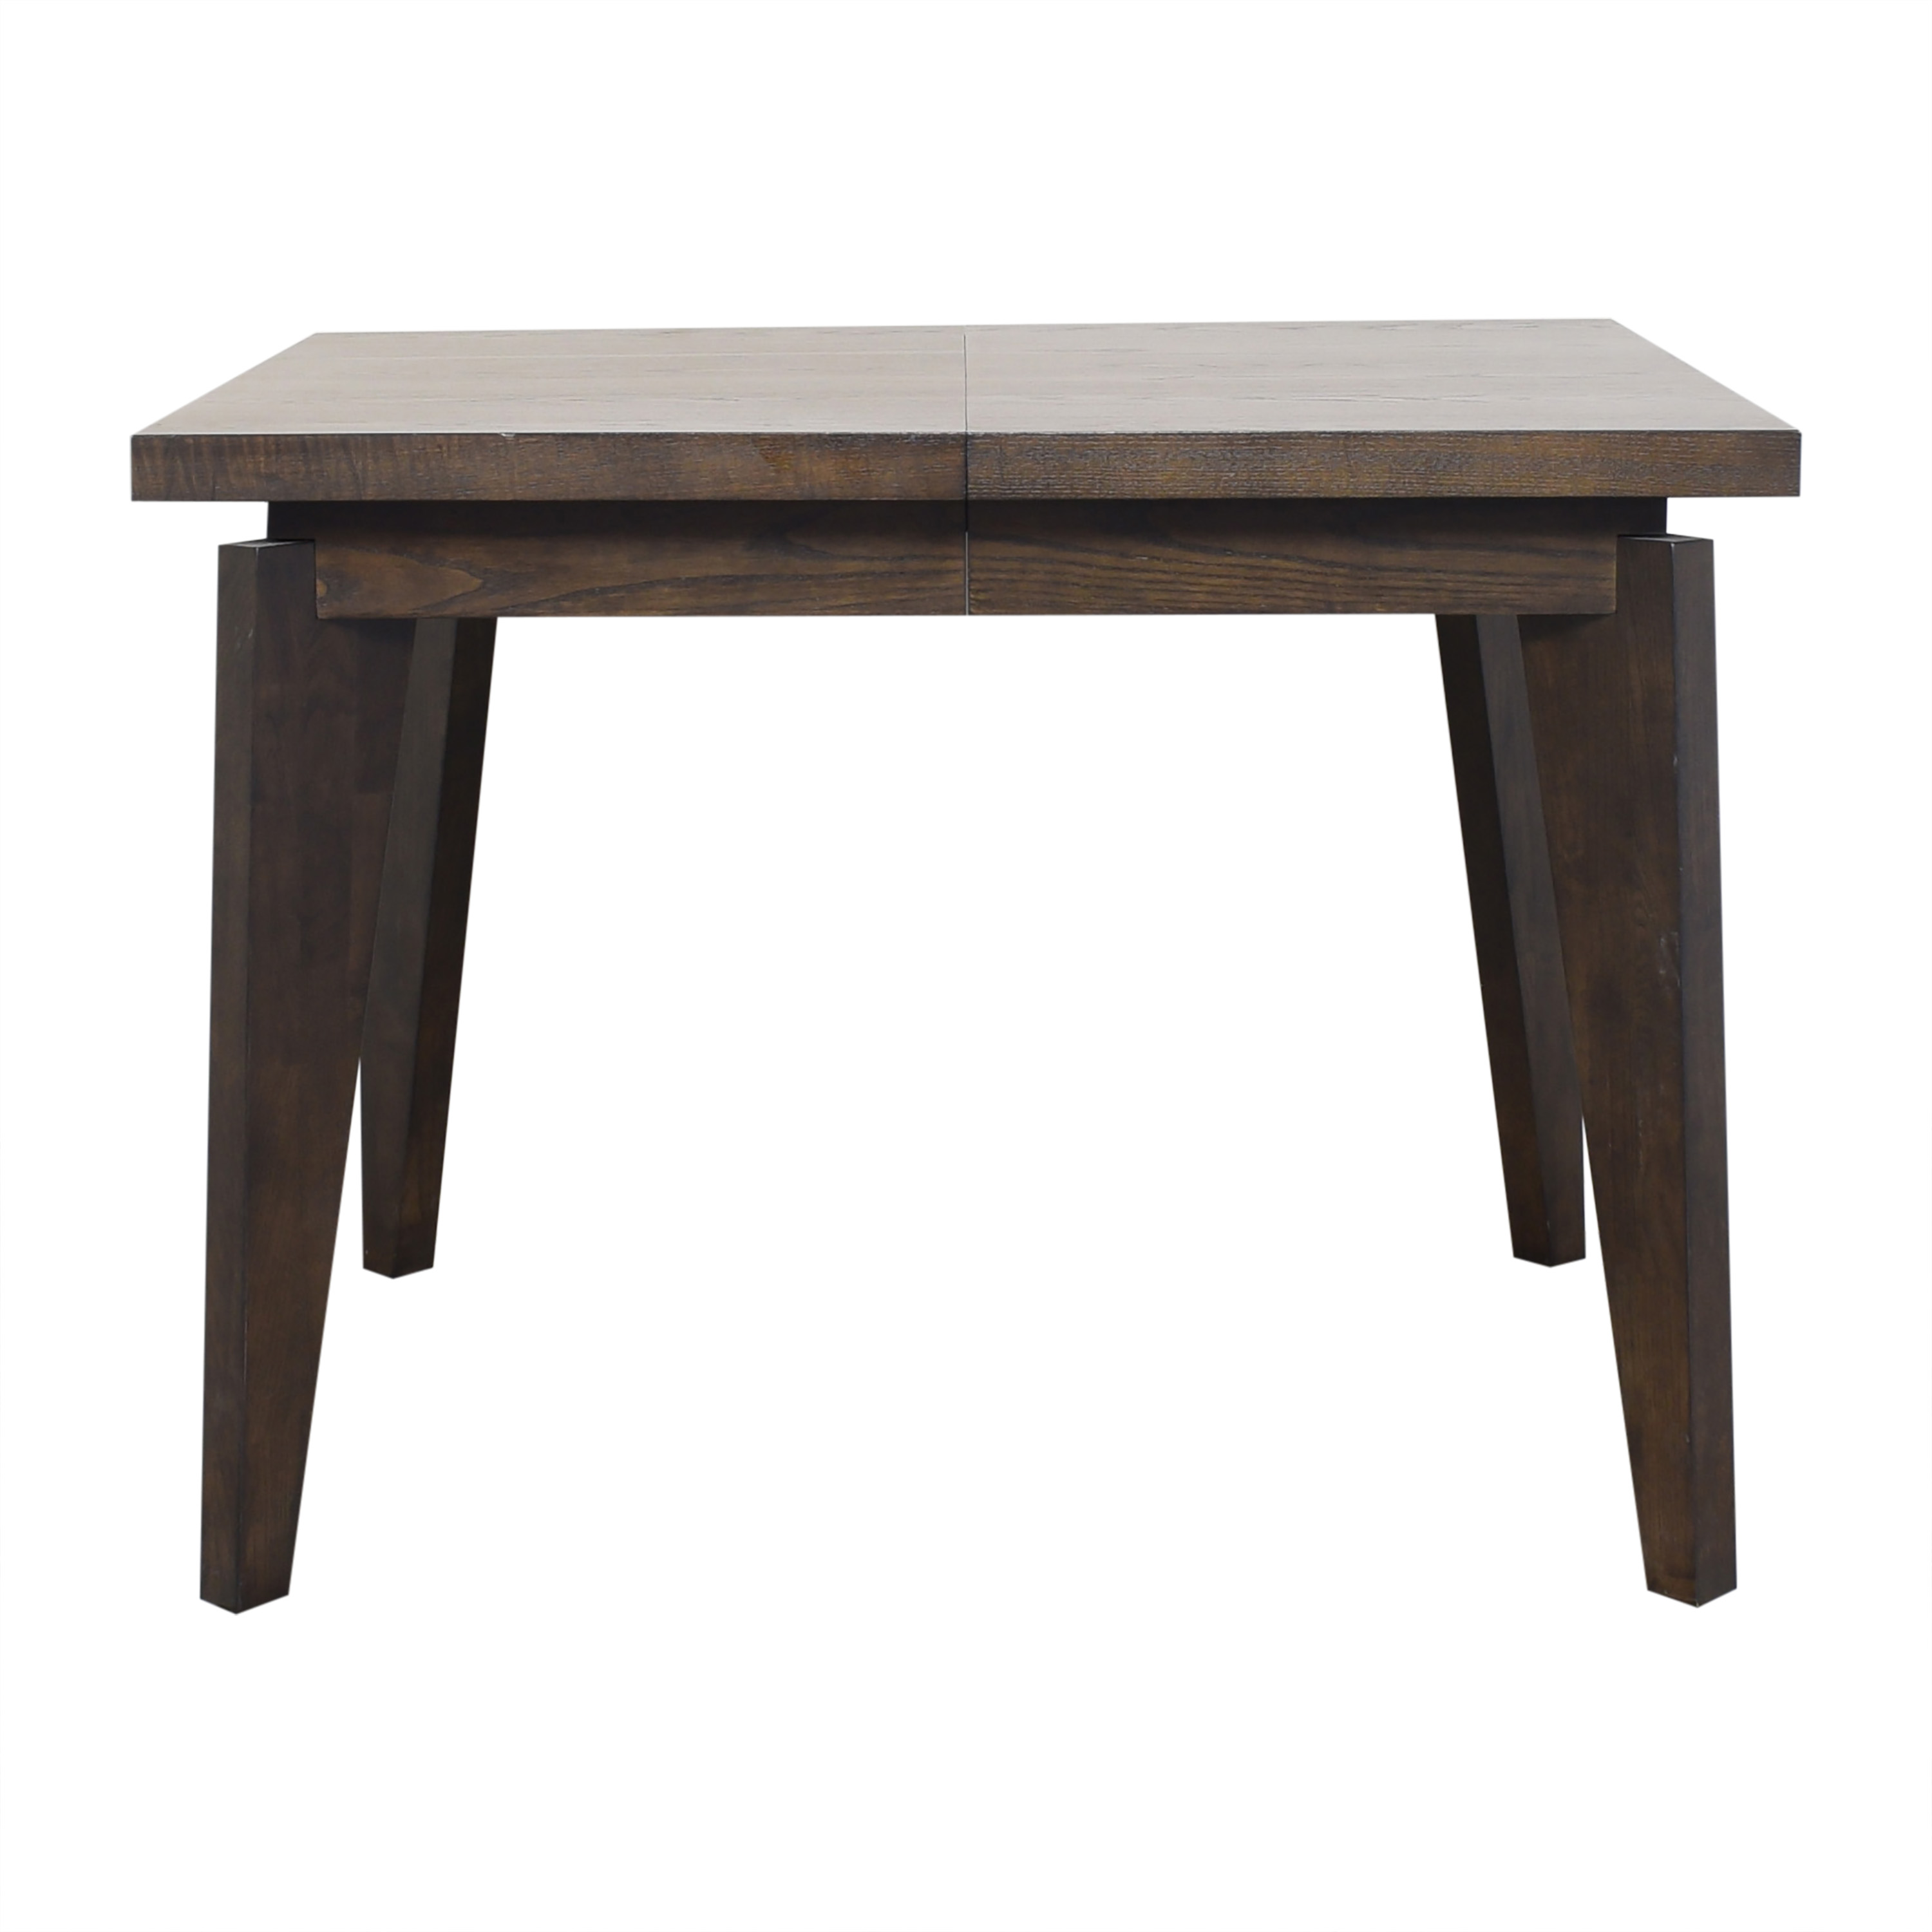 West Elm Angled Leg Expandable Dining Table West Elm